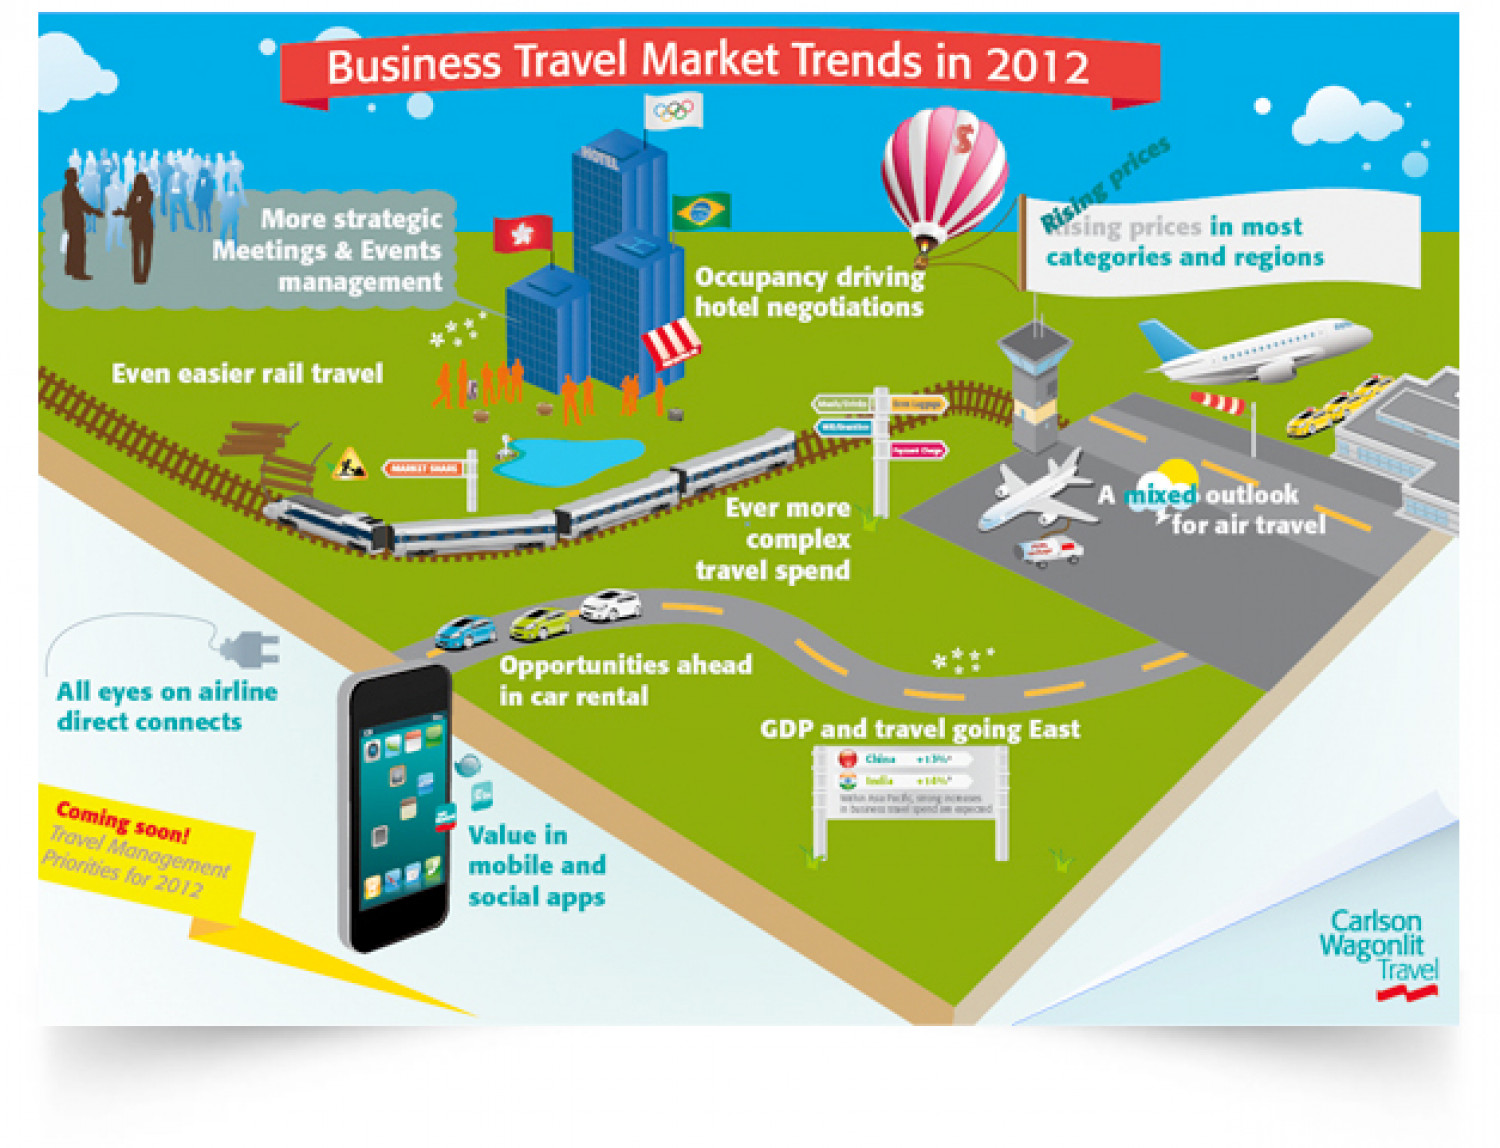 Business Travel Market Trends 2012 Infographic